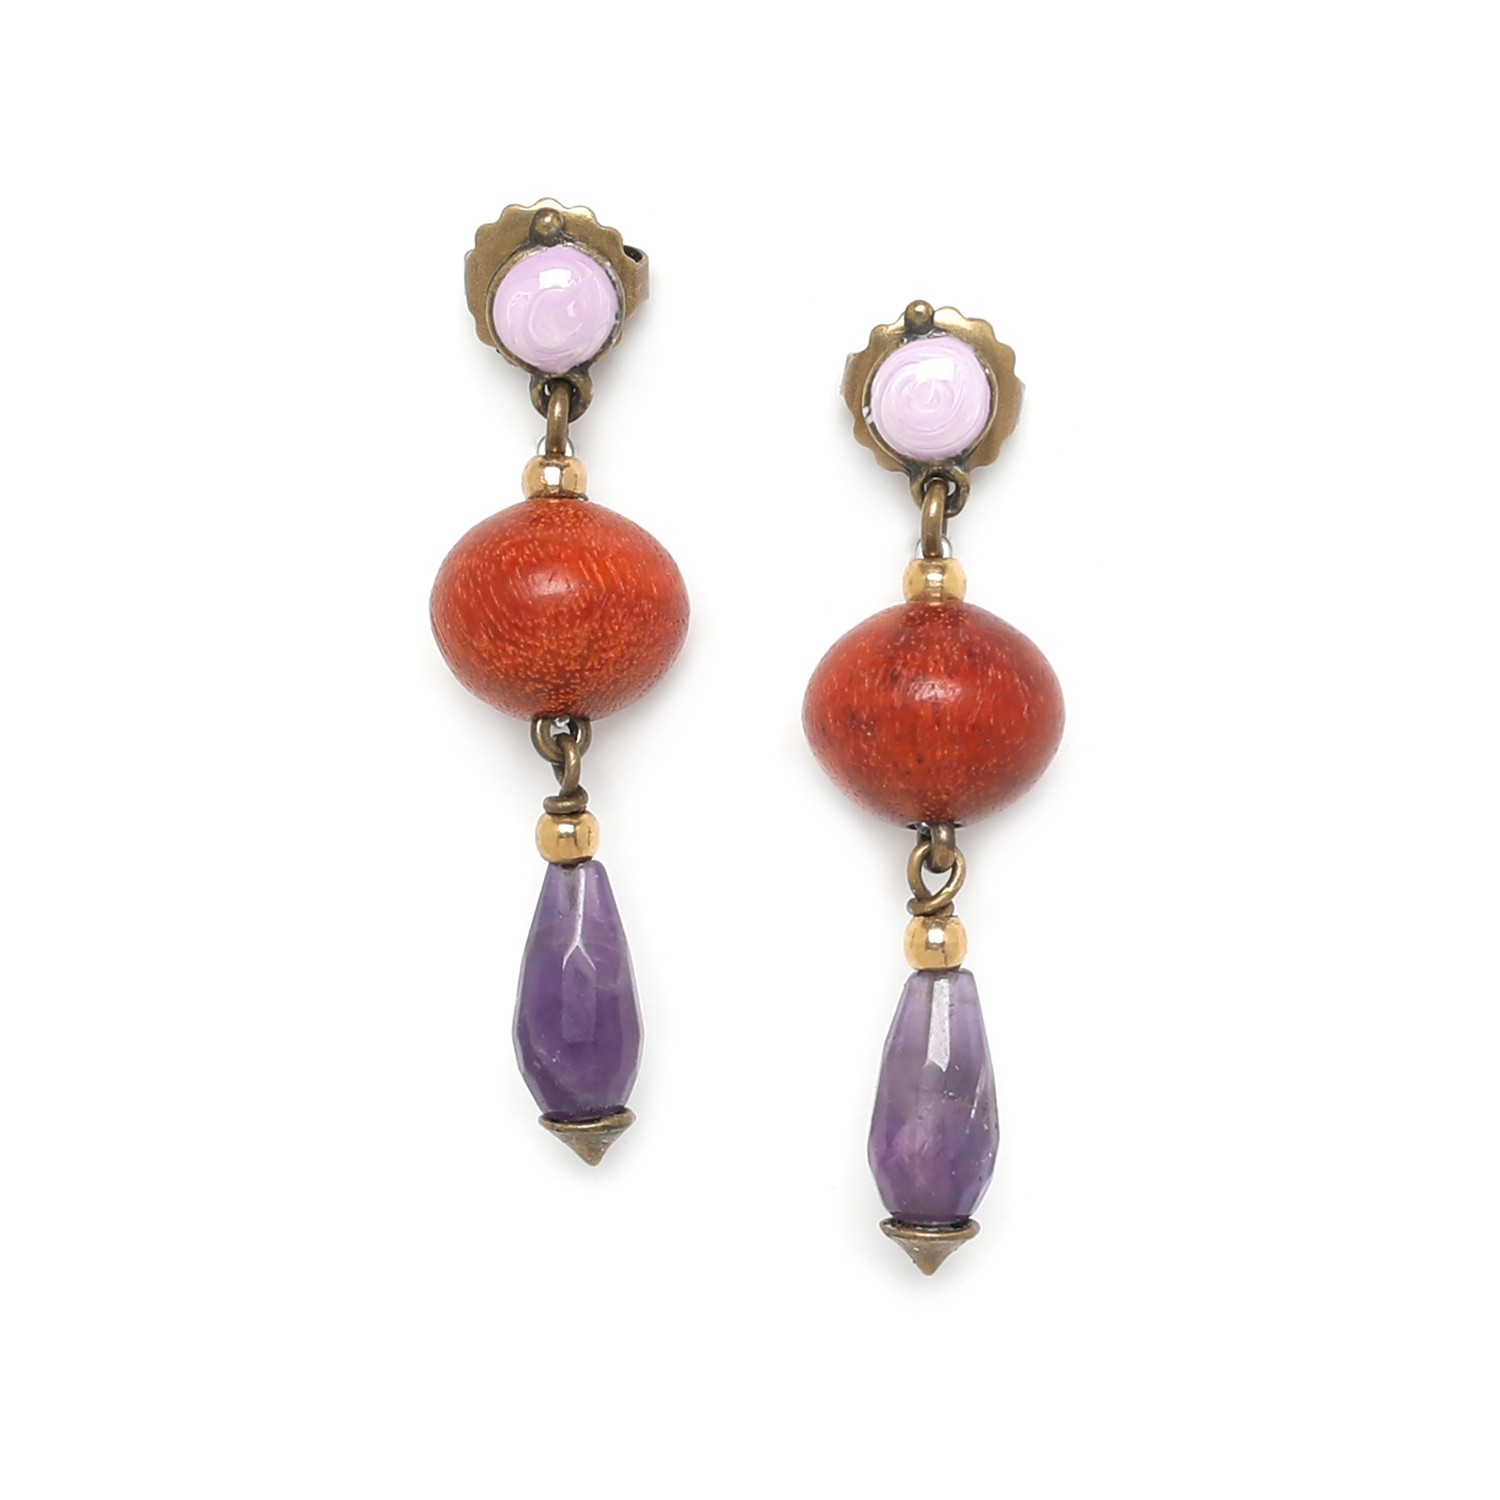 MELTING POT amethyst drop earrings